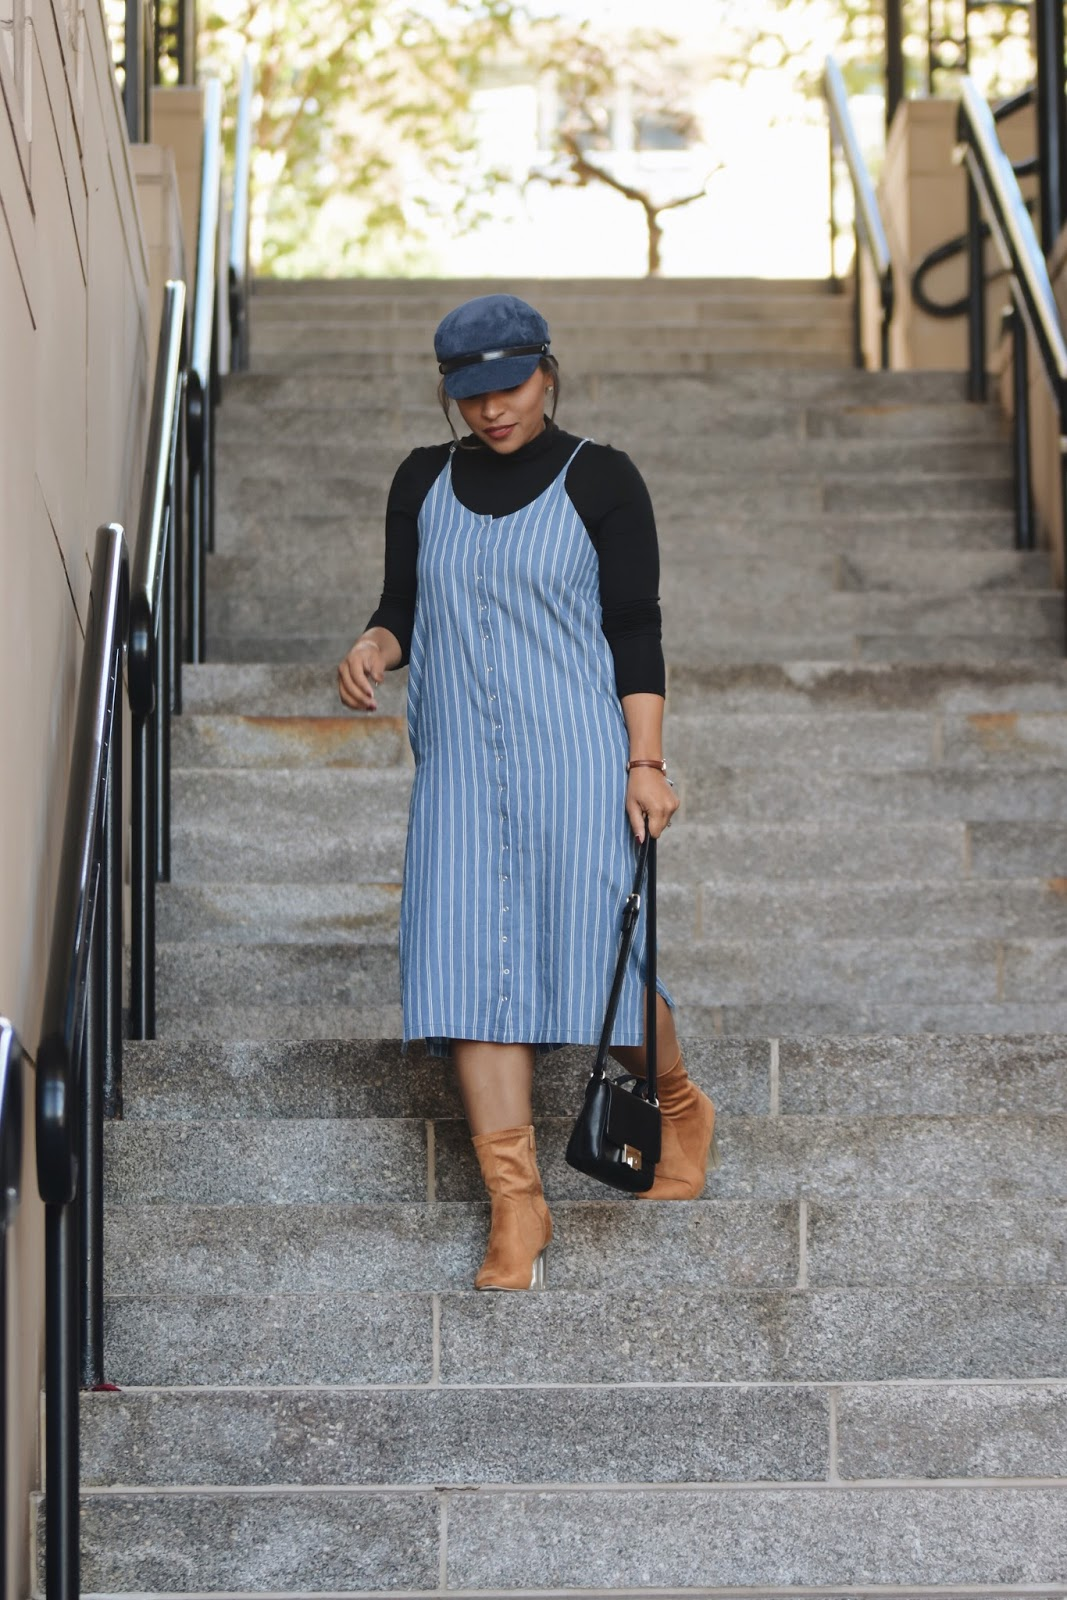 shop maude, pinstripe, fall fashion, cabbie hat, fall boots, fall outfit ideas, pinstripe dress, dc bloggers, cabbie hat trend, fall dresses